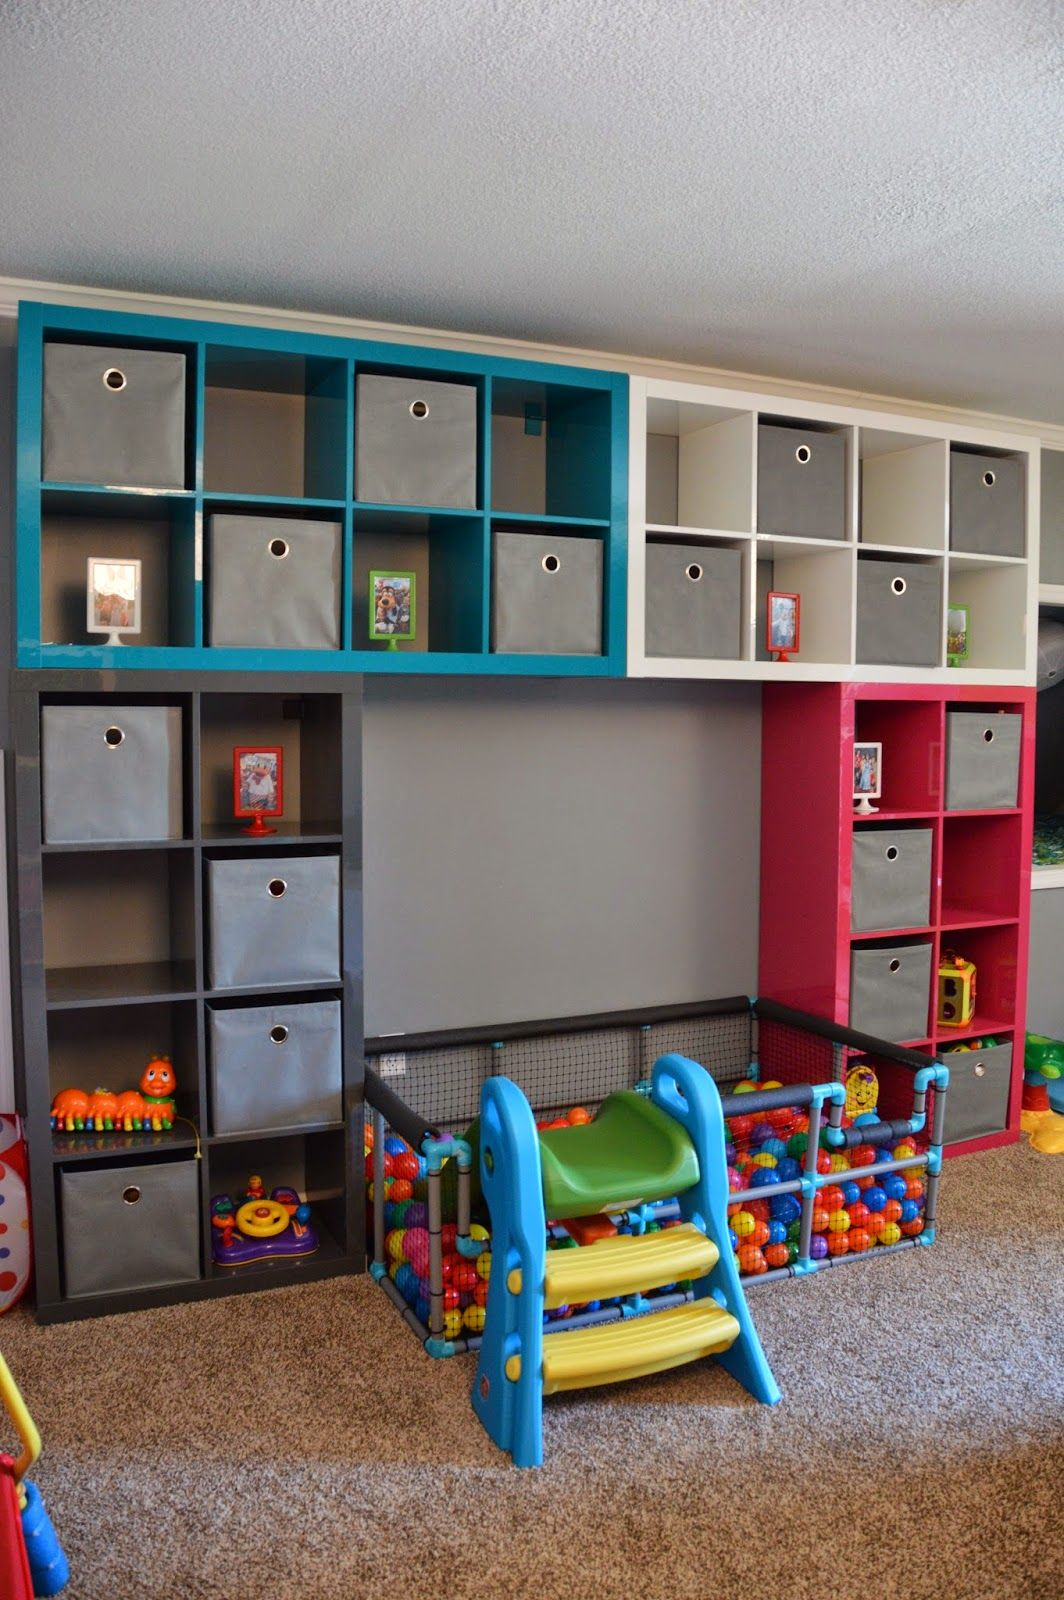 Tour Of Our Home ~ Playroom | Baby | Playroom, Toy Rooms, Playroom